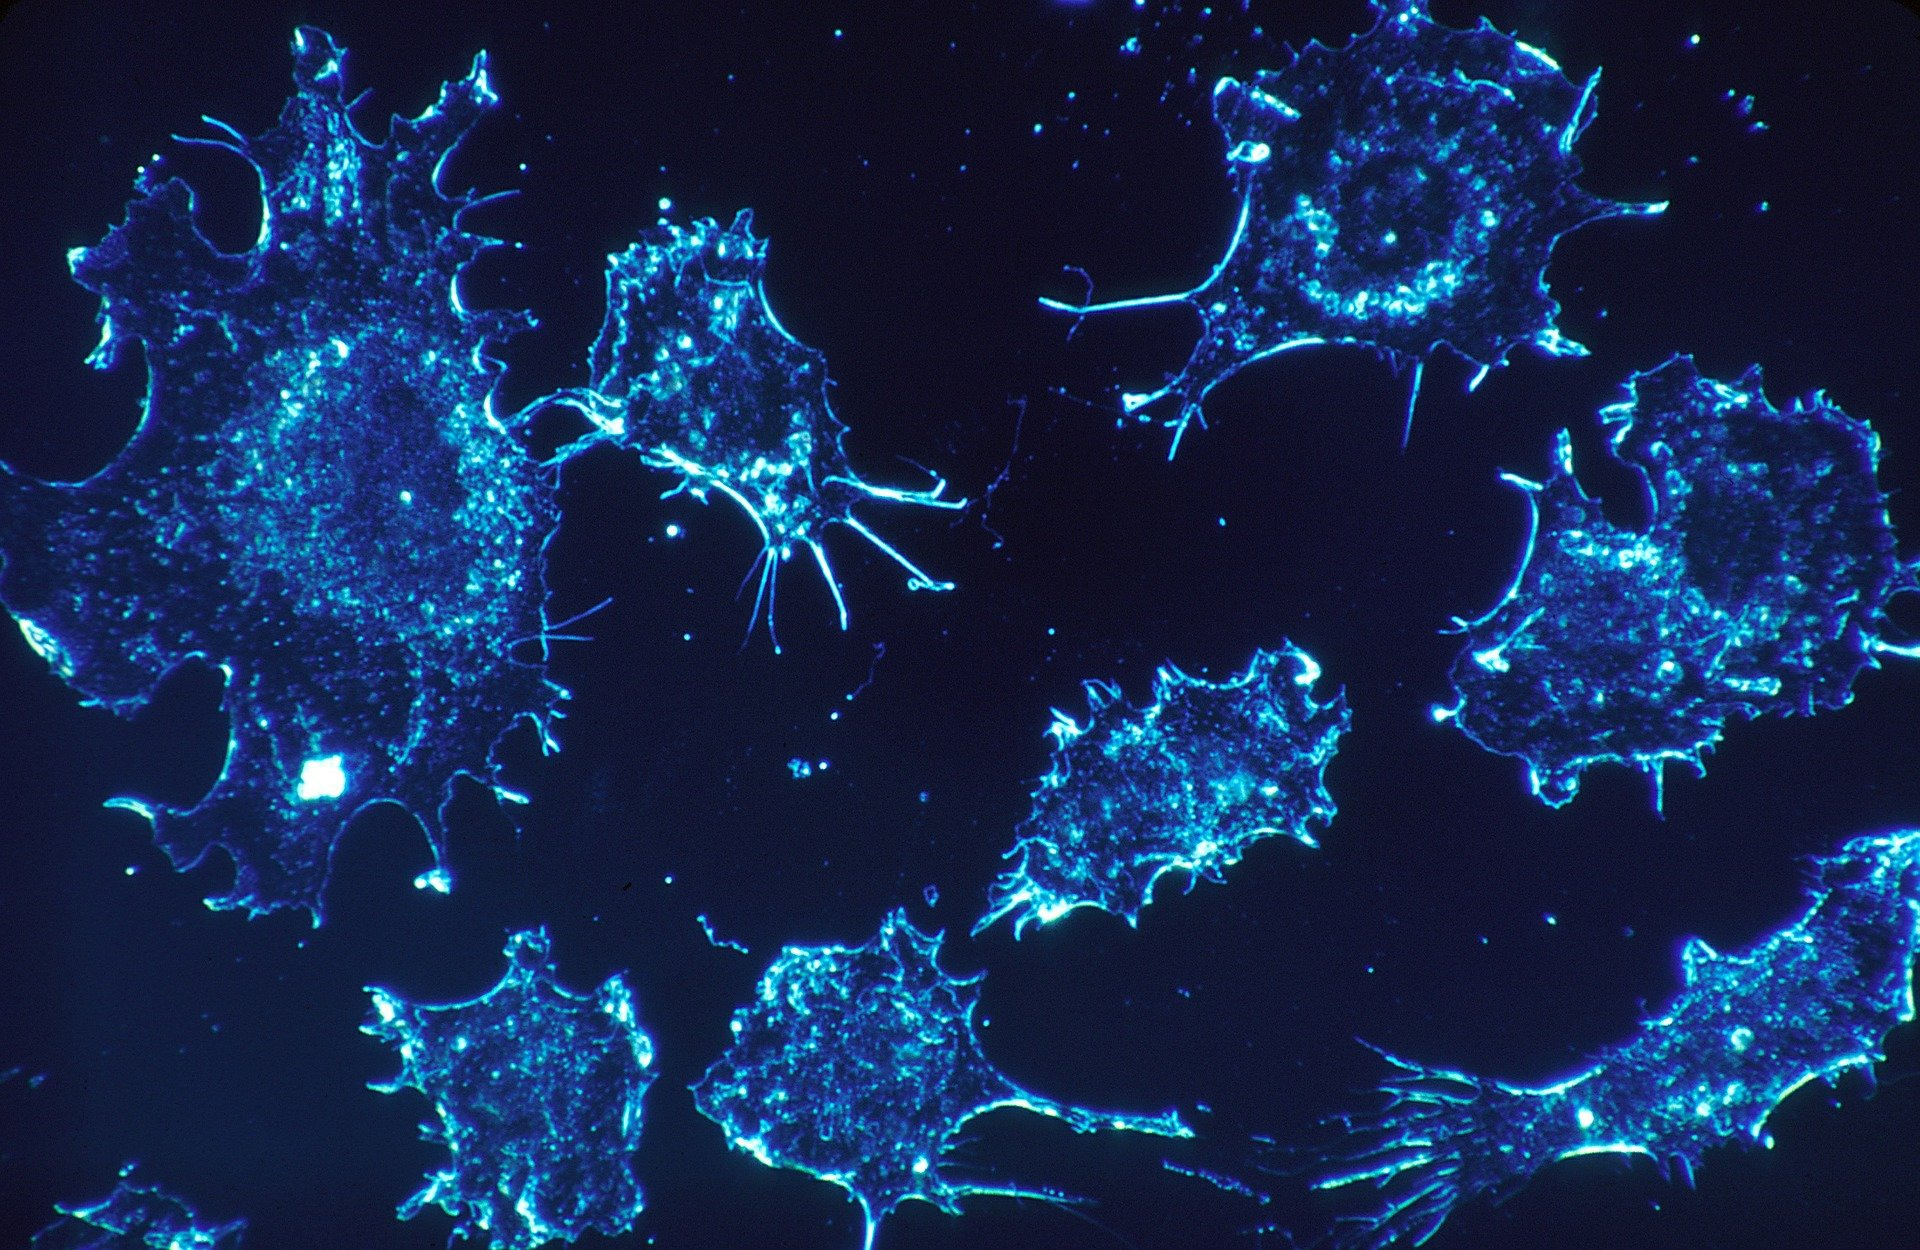 Cannabinoid compounds may inhibit growth of colon cancer cells